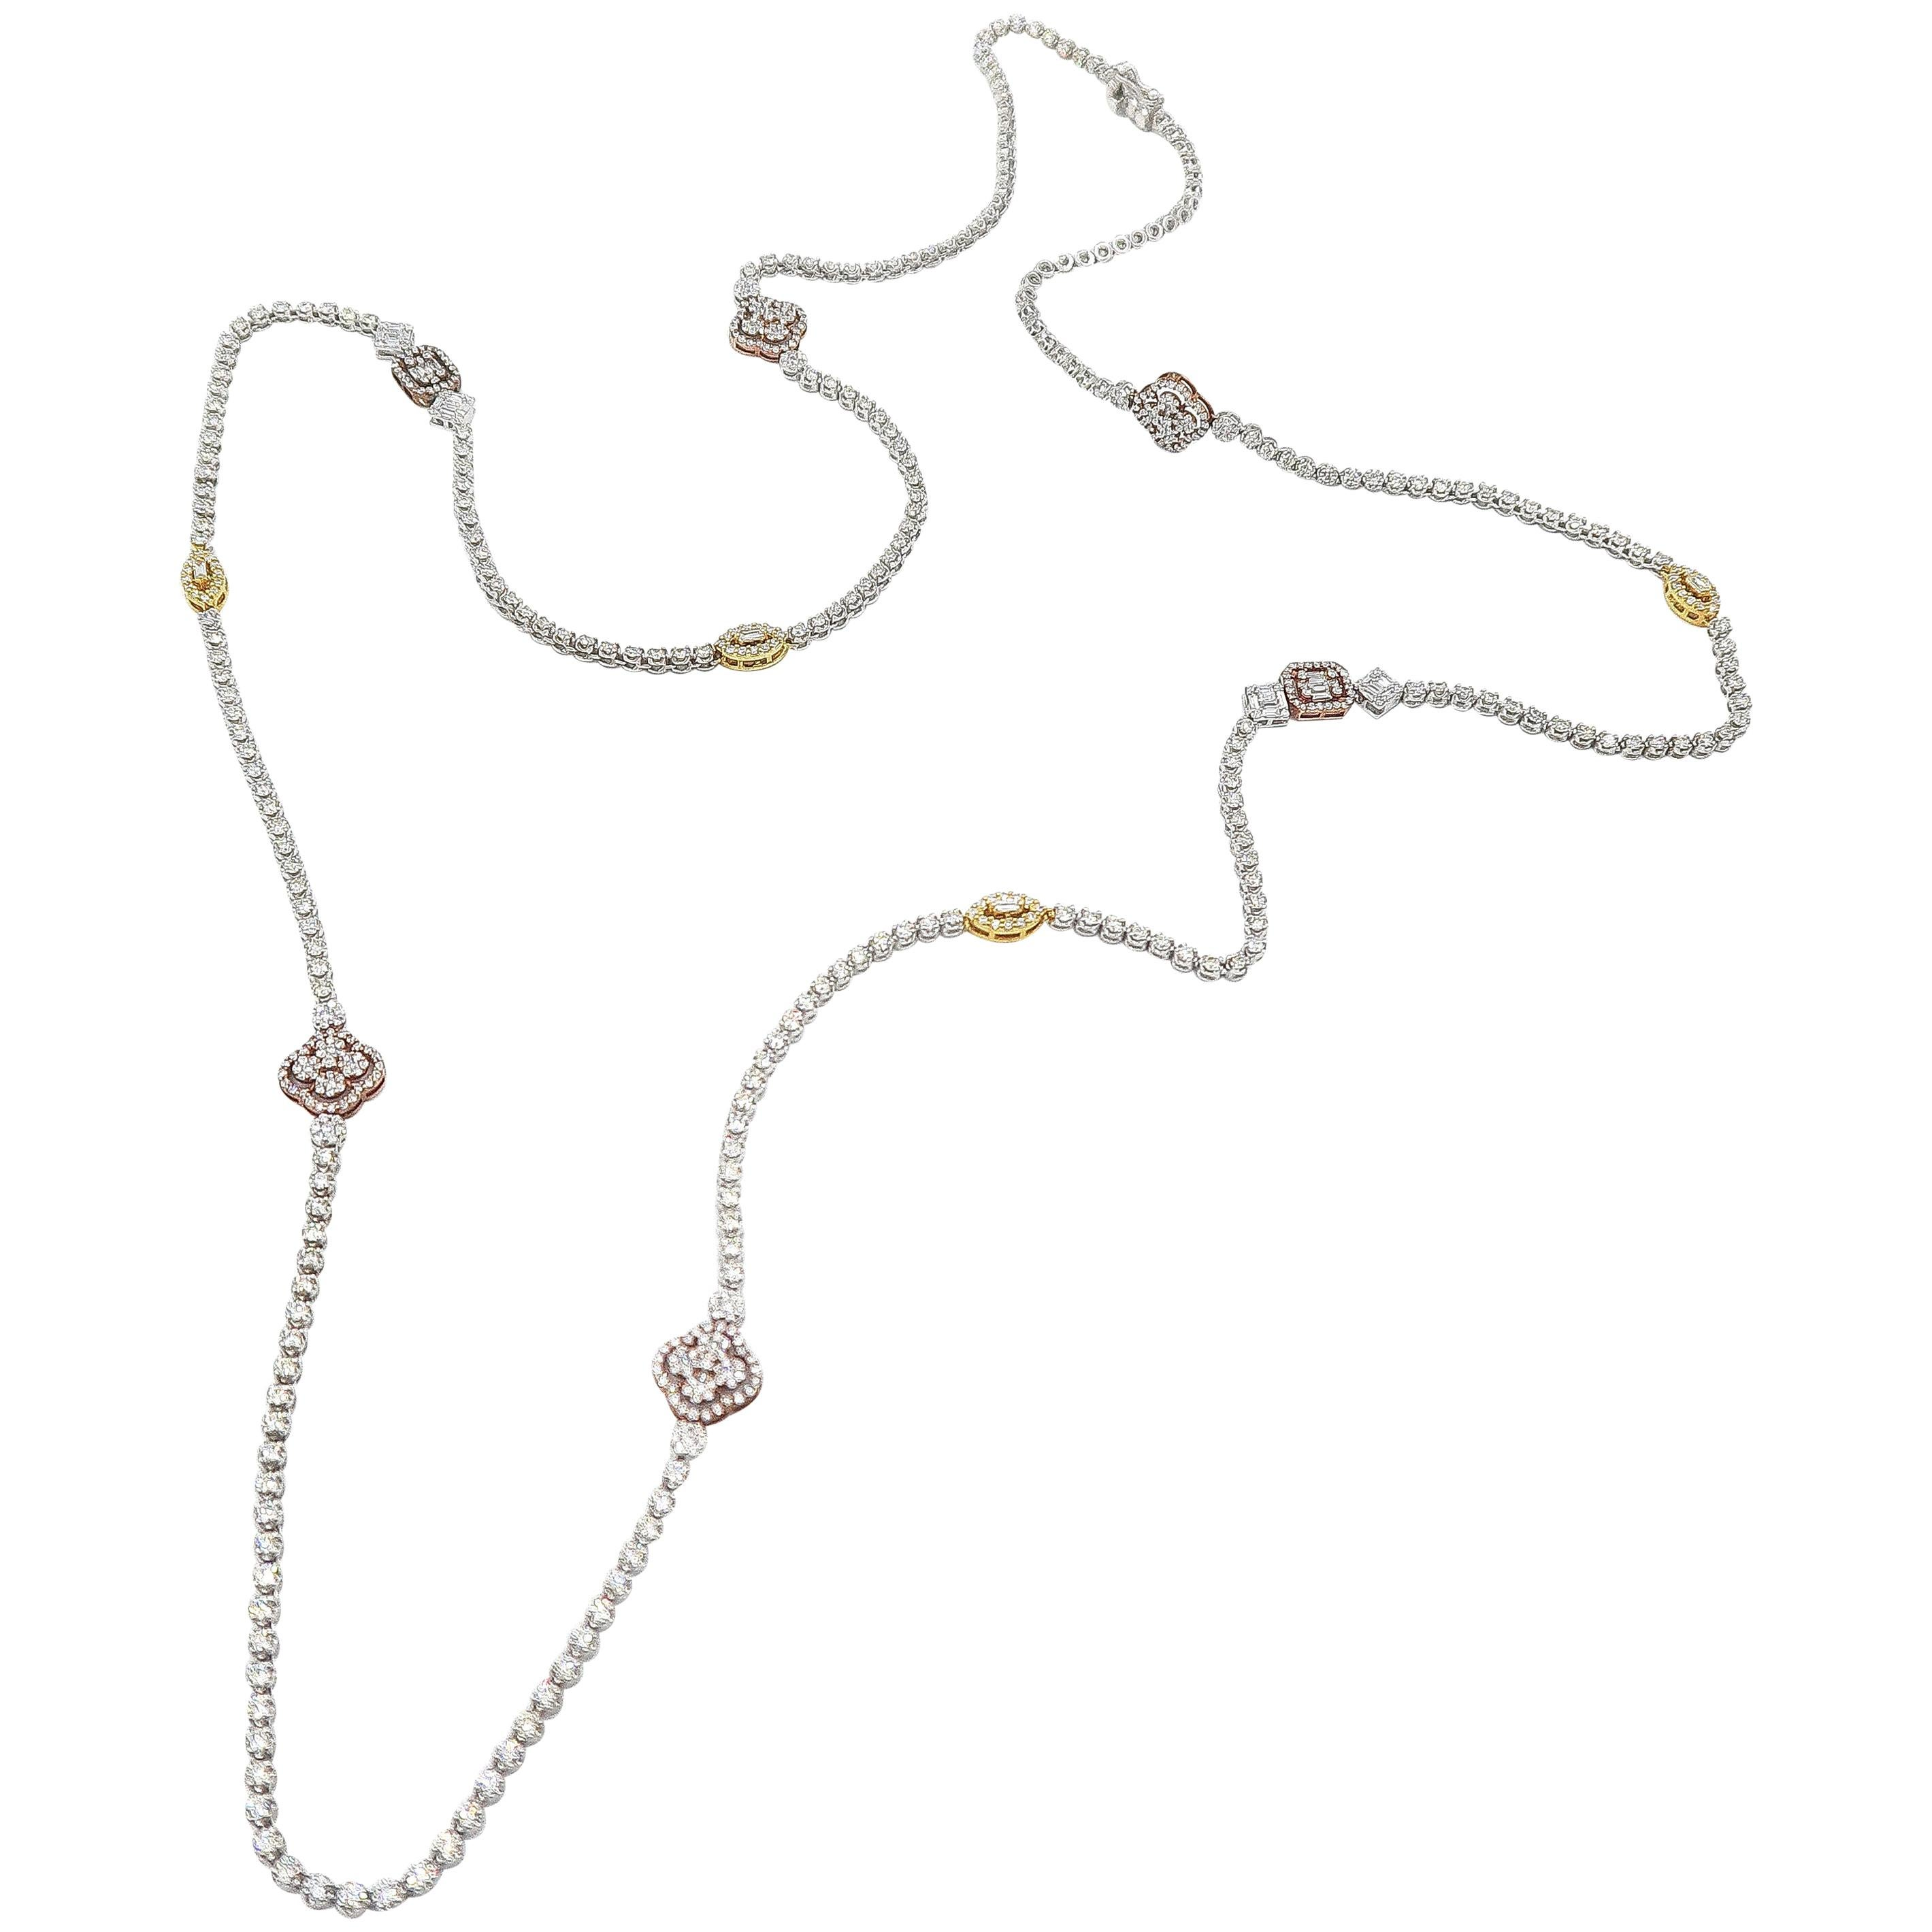 Throw-On Long Thin Diamond Tennis Necklace with Diamond Motifs in 18 Karat Gold